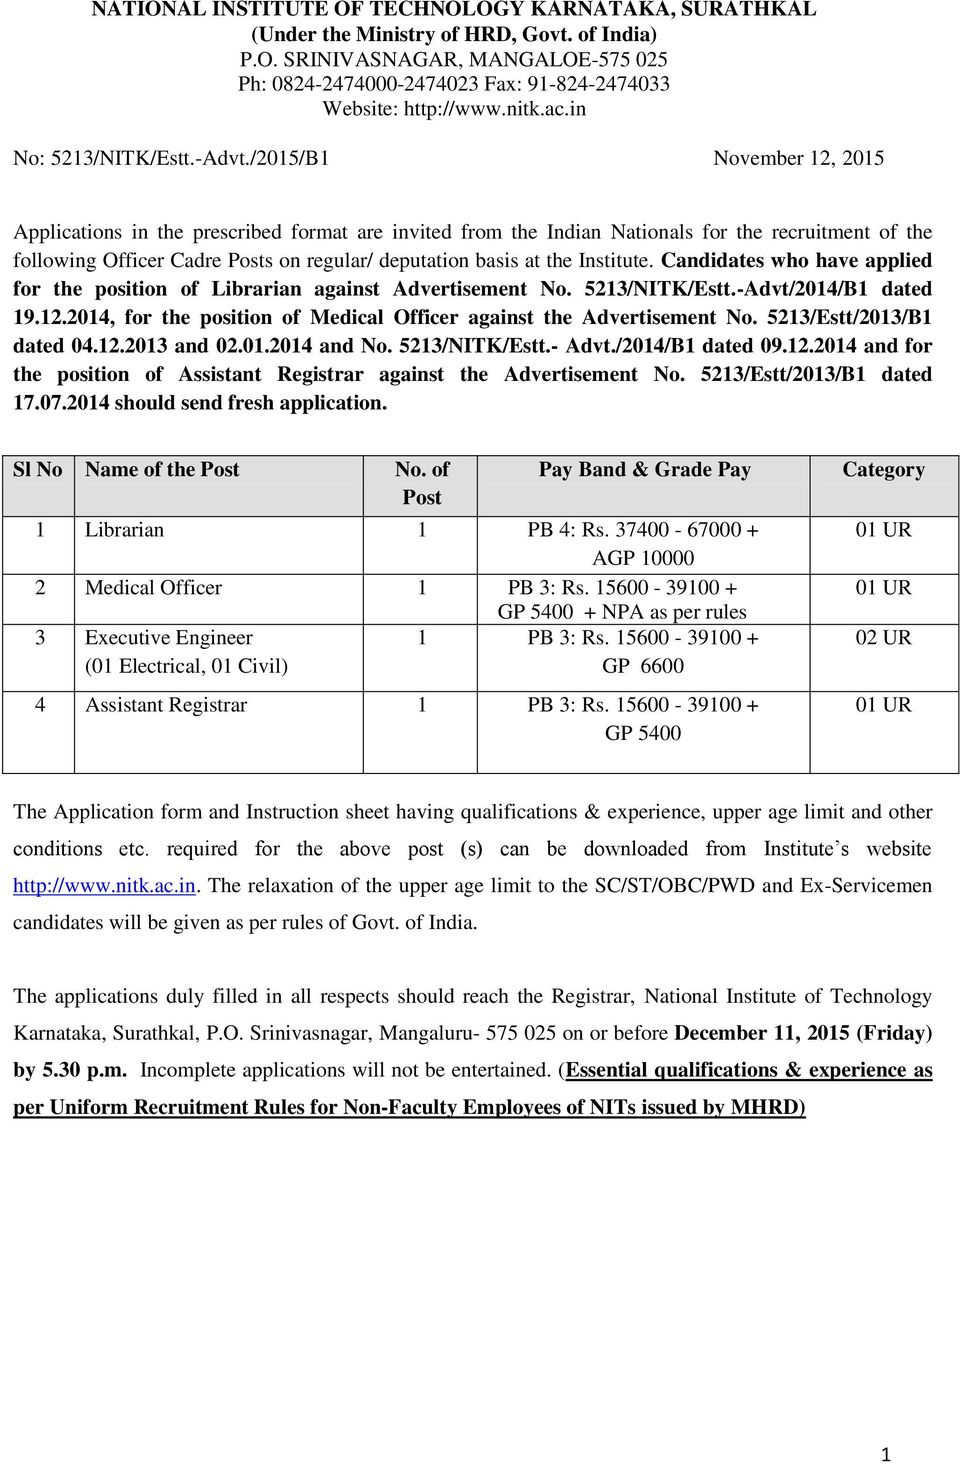 /2015/B1 November 12, 2015 Applications in the prescribed format are invited from the Indian Nationals for the recruitment of the following Officer Cadre Posts on regular/ deputation basis at the